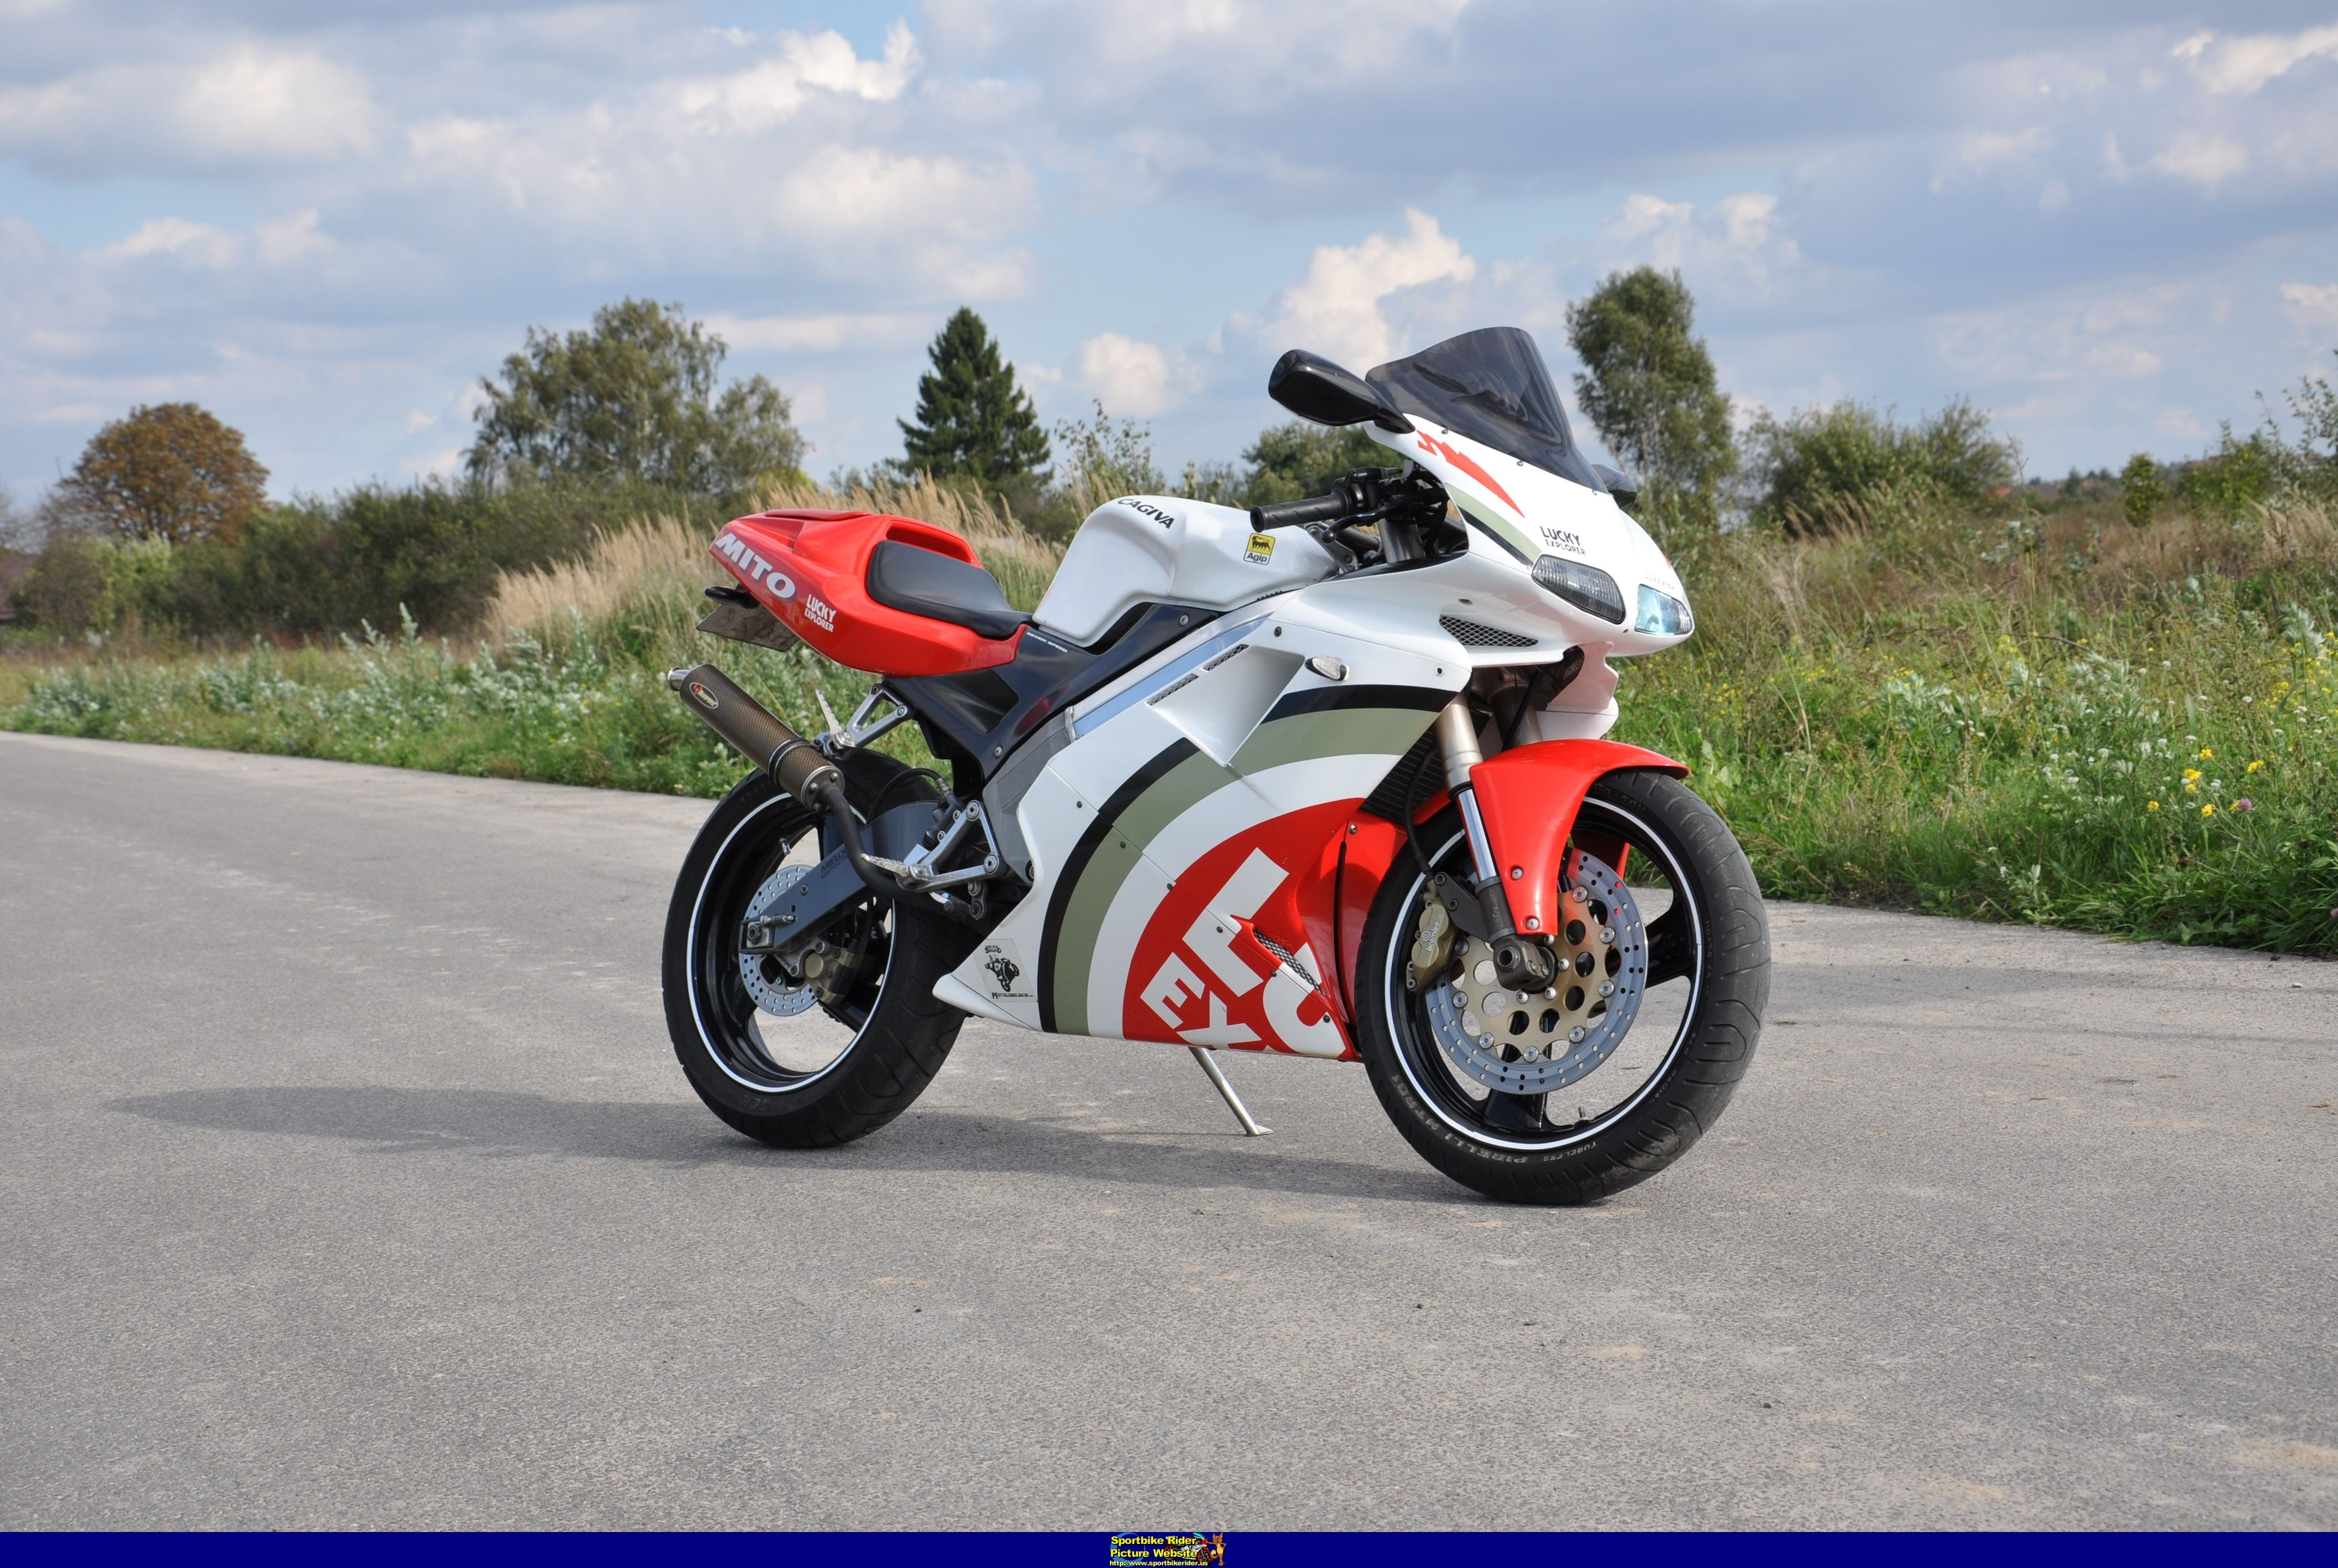 Cagiva Planet 125 1998 images #69430